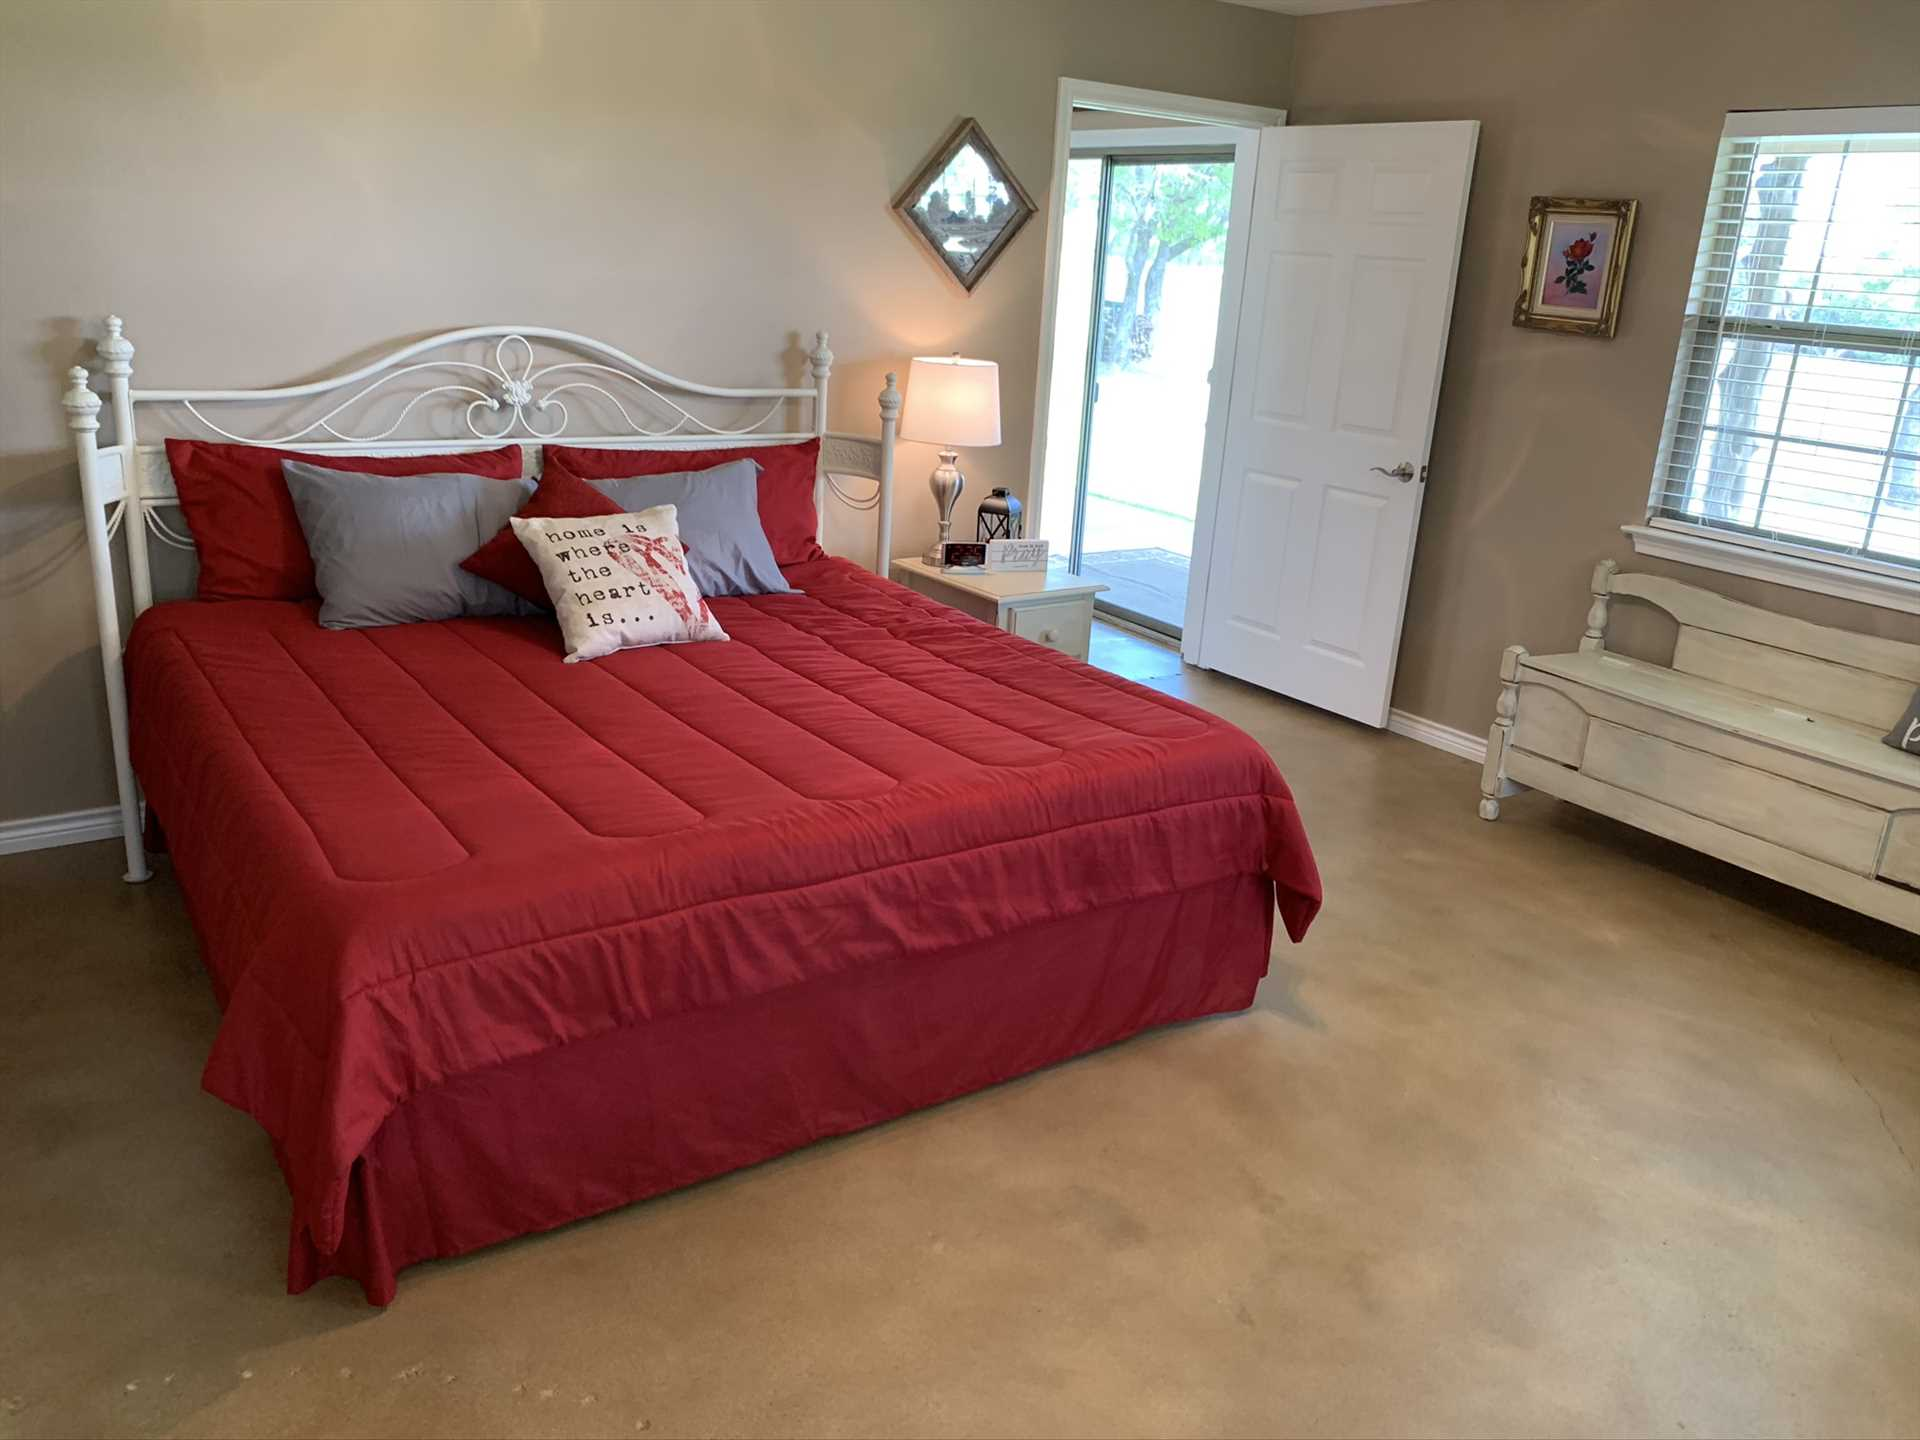 The highlight of the third bedroom here is a plush king-sized bed, draped with clean and warm linens-as are all the beds here!